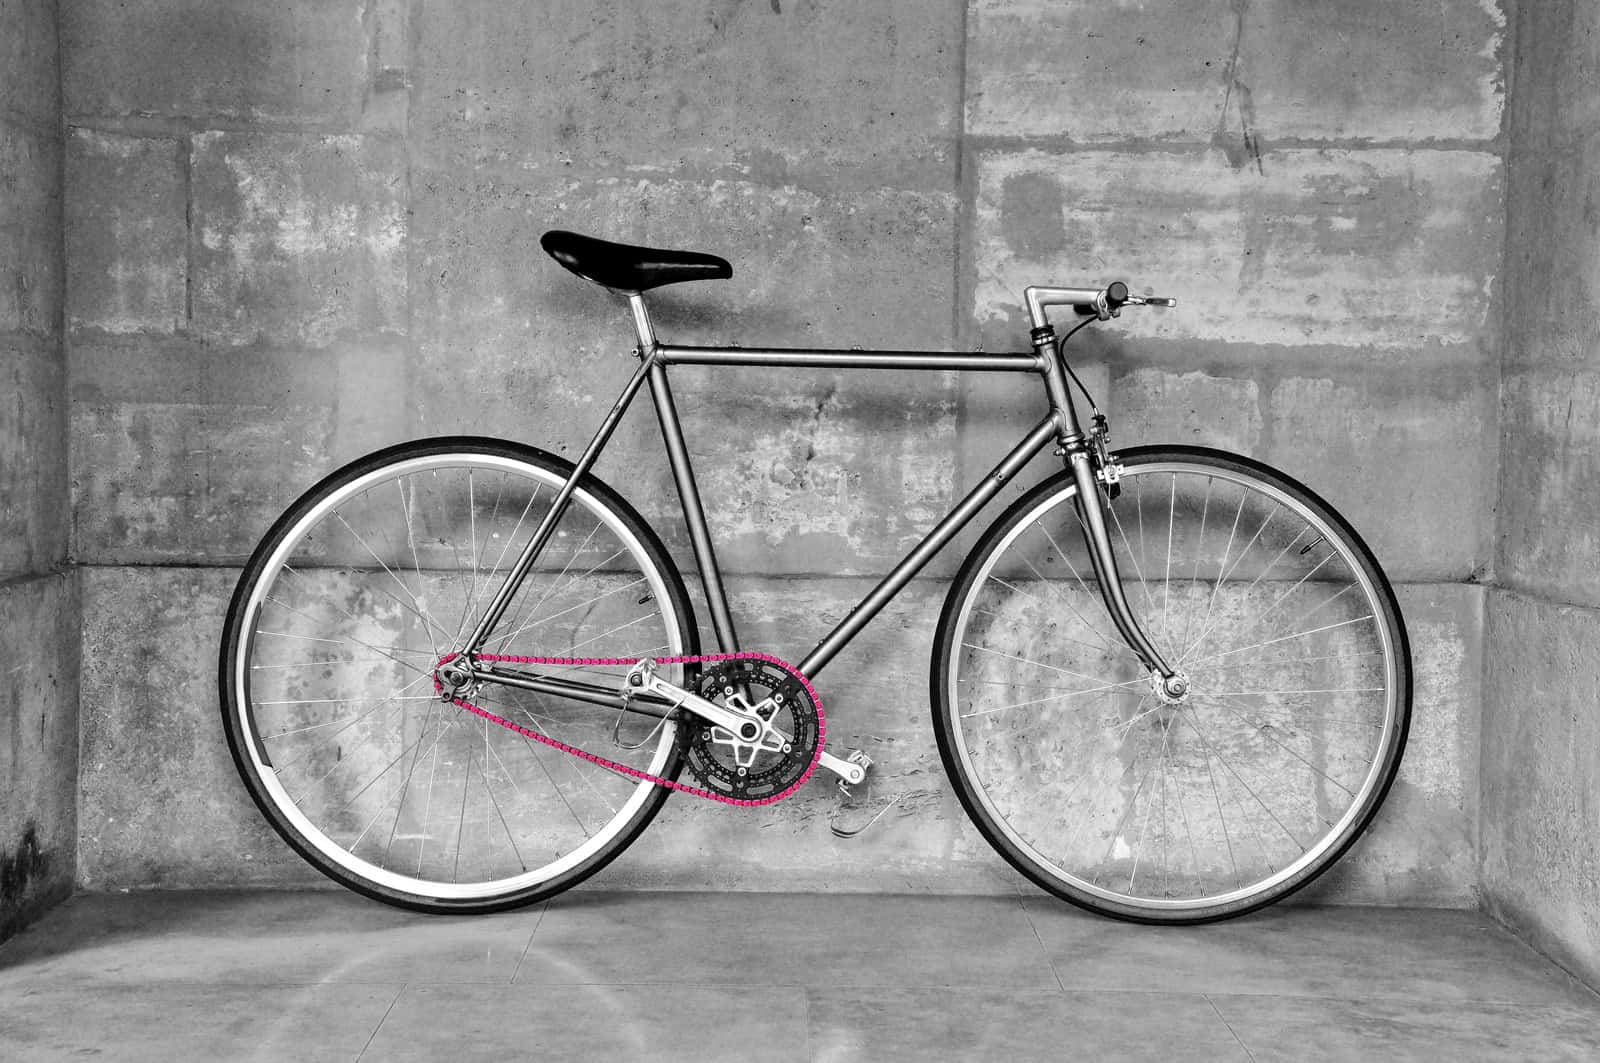 white and black single speed bikes